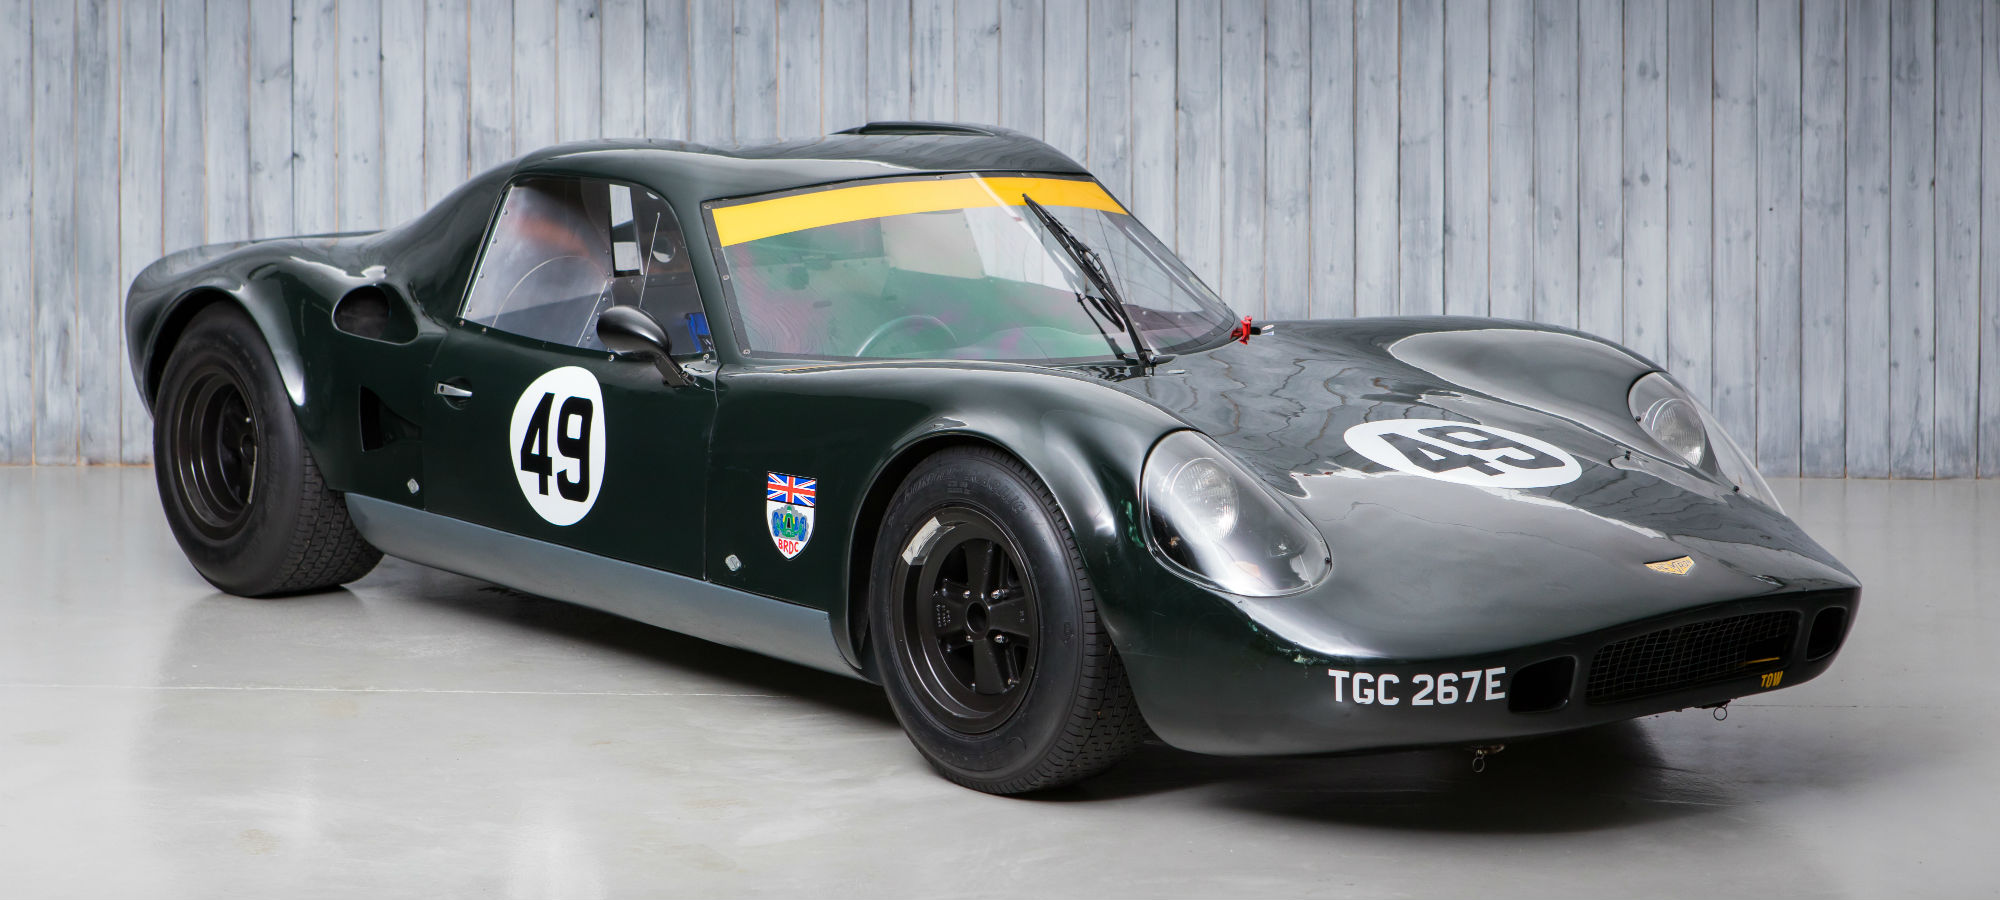 The Racing Car Show, Multiple World Championship Participant, In The Current Ownership Since 1984, 1966 Chevron B6